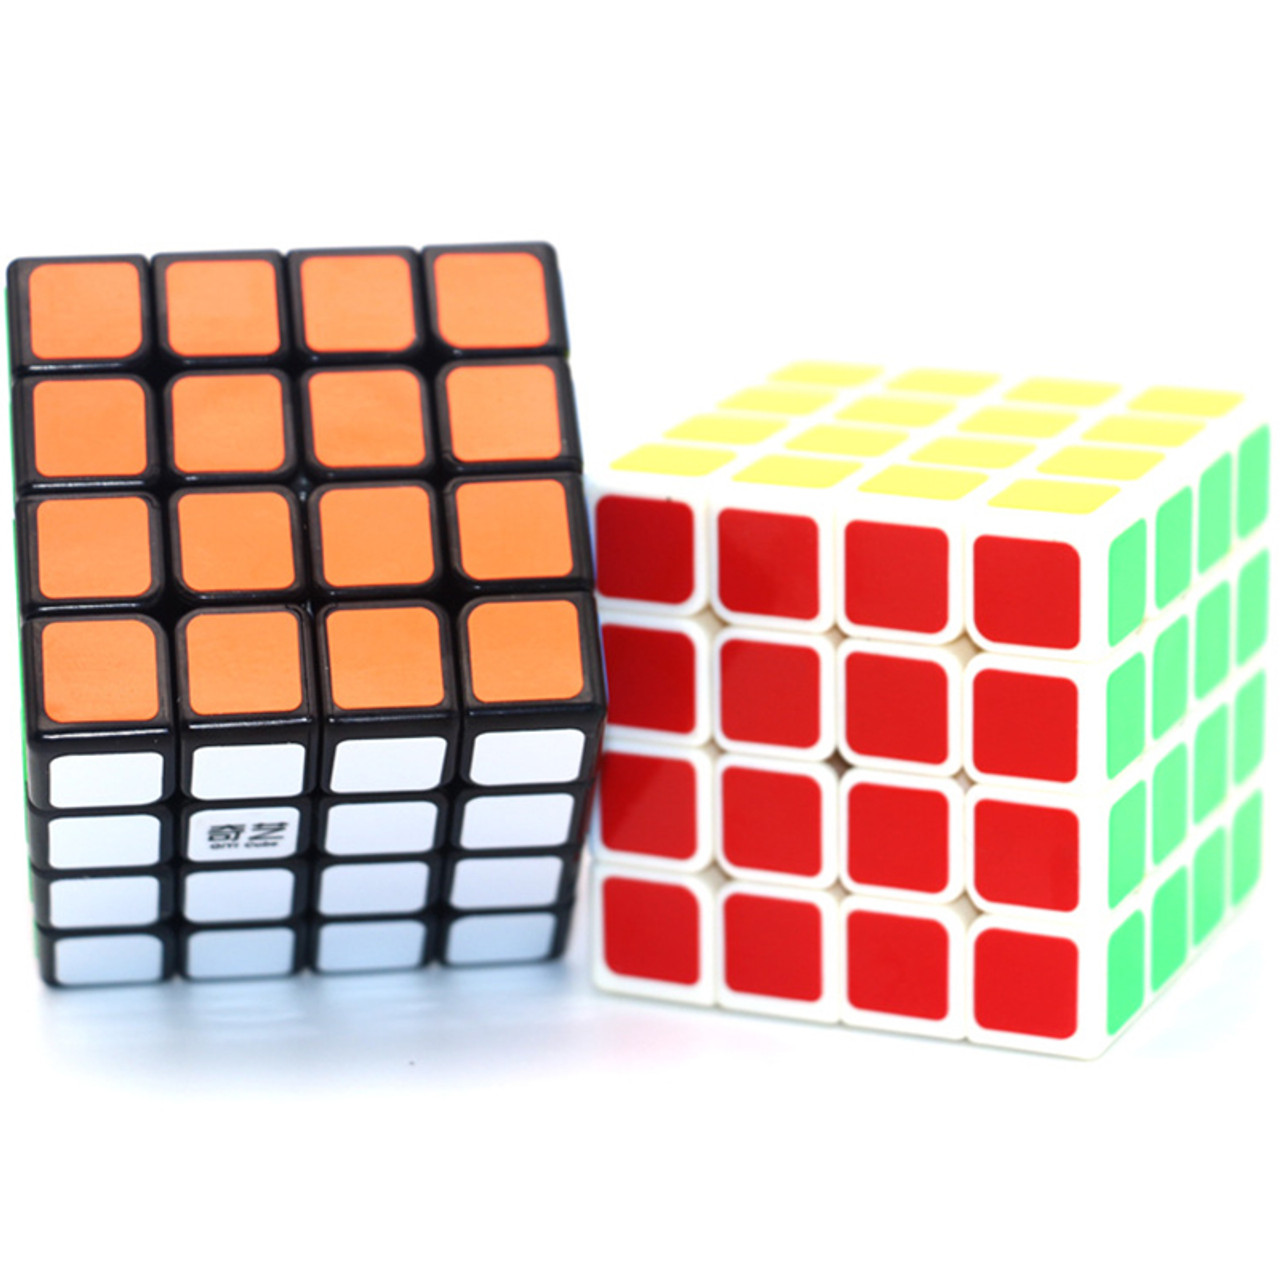 Tool Bags Sporting New 4x4x4 Professional Speed Cube Magic Cube Educational Puzzle Toys For Children Learning Cubo Magico Toys Rapid Heat Dissipation